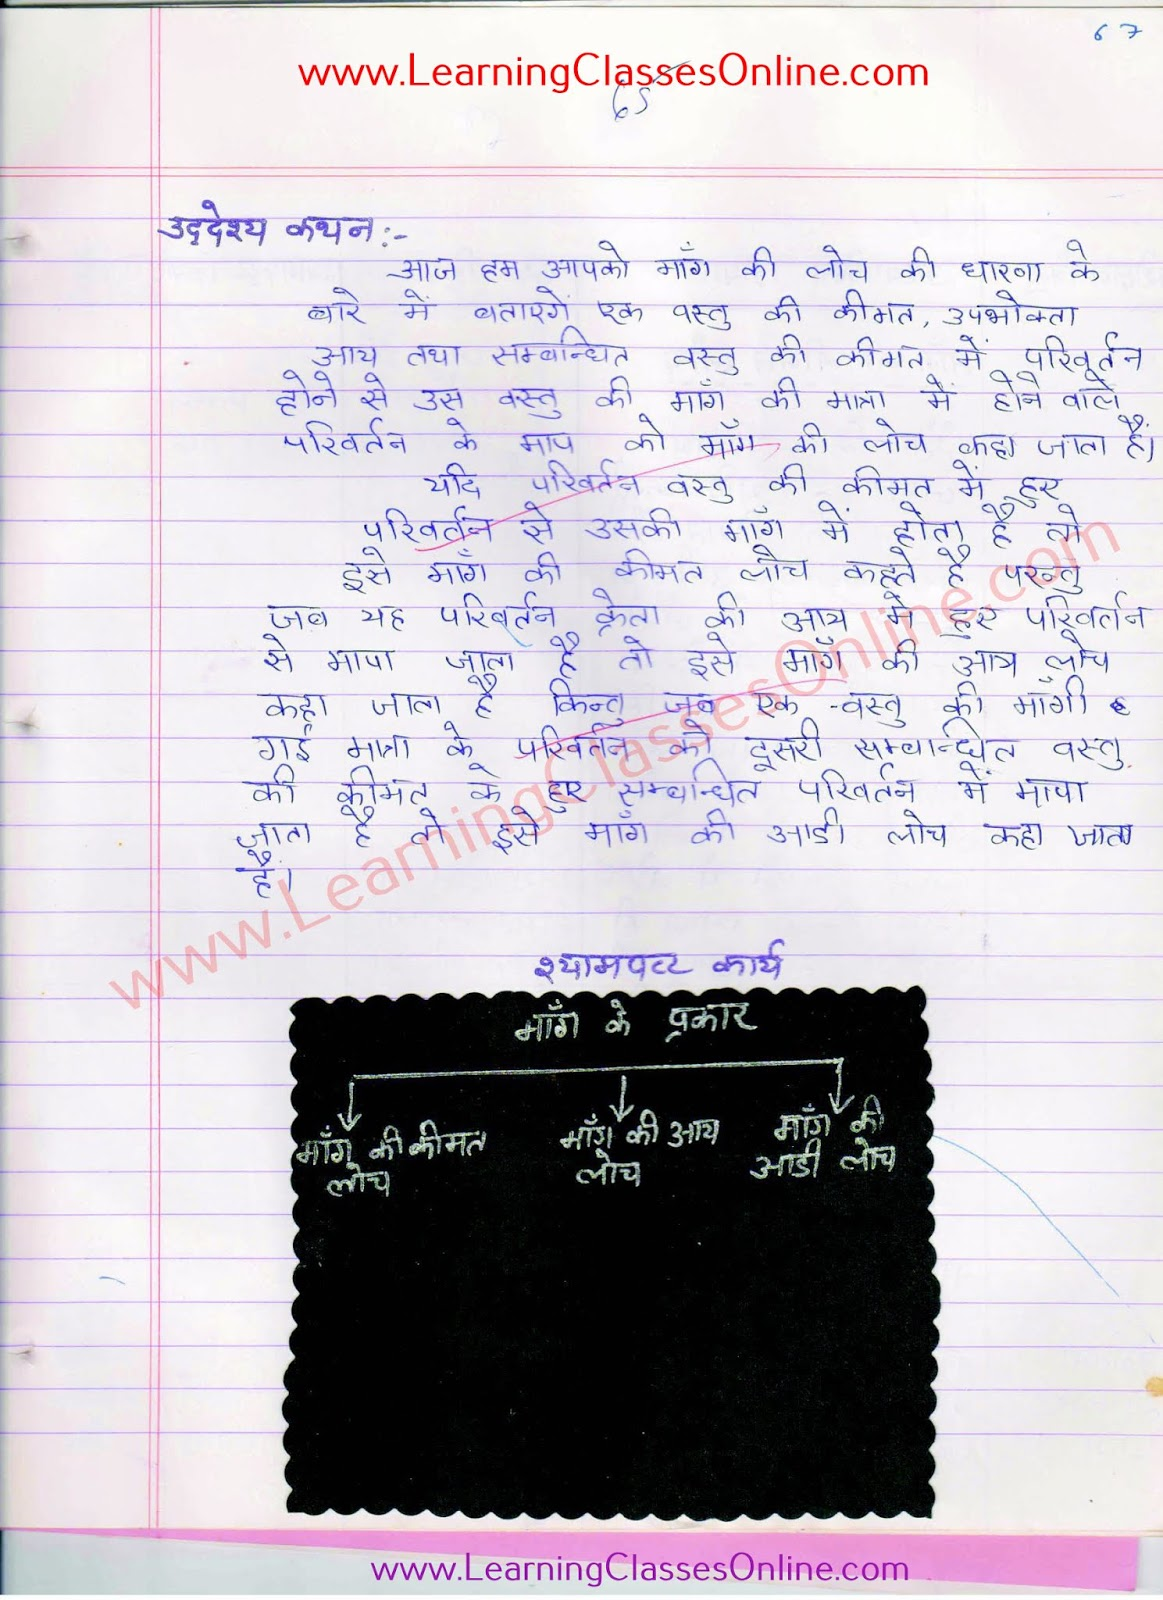 arthsastra mang ki loch lesson plan in hindi